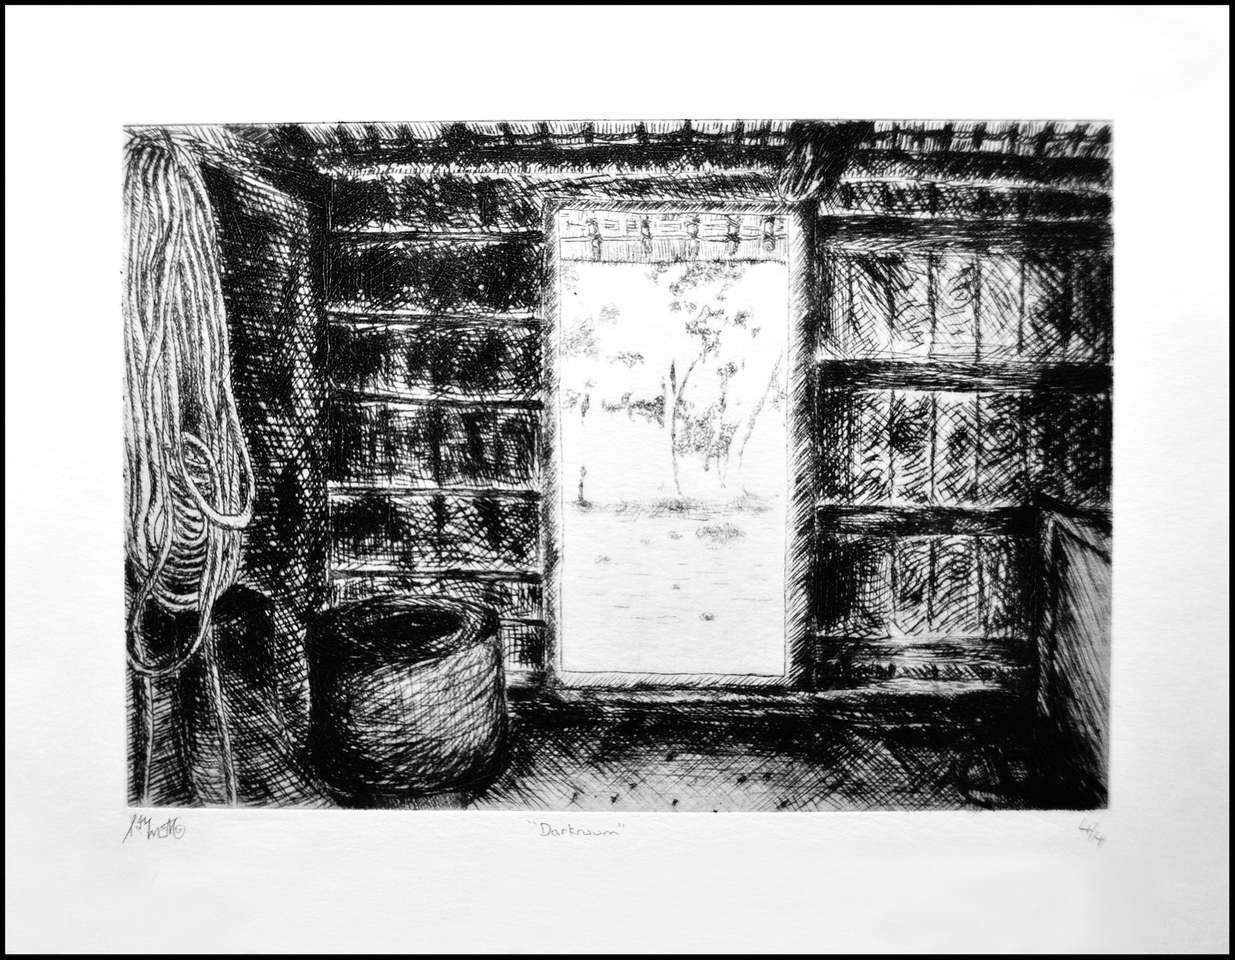 Day 278 Tuesday October 5<br /> Maybe October will be my artwork month. This is a picture of the interior of a Japanese farm house drawn by Raymen when he was in high school. It hangs on our living room wall.